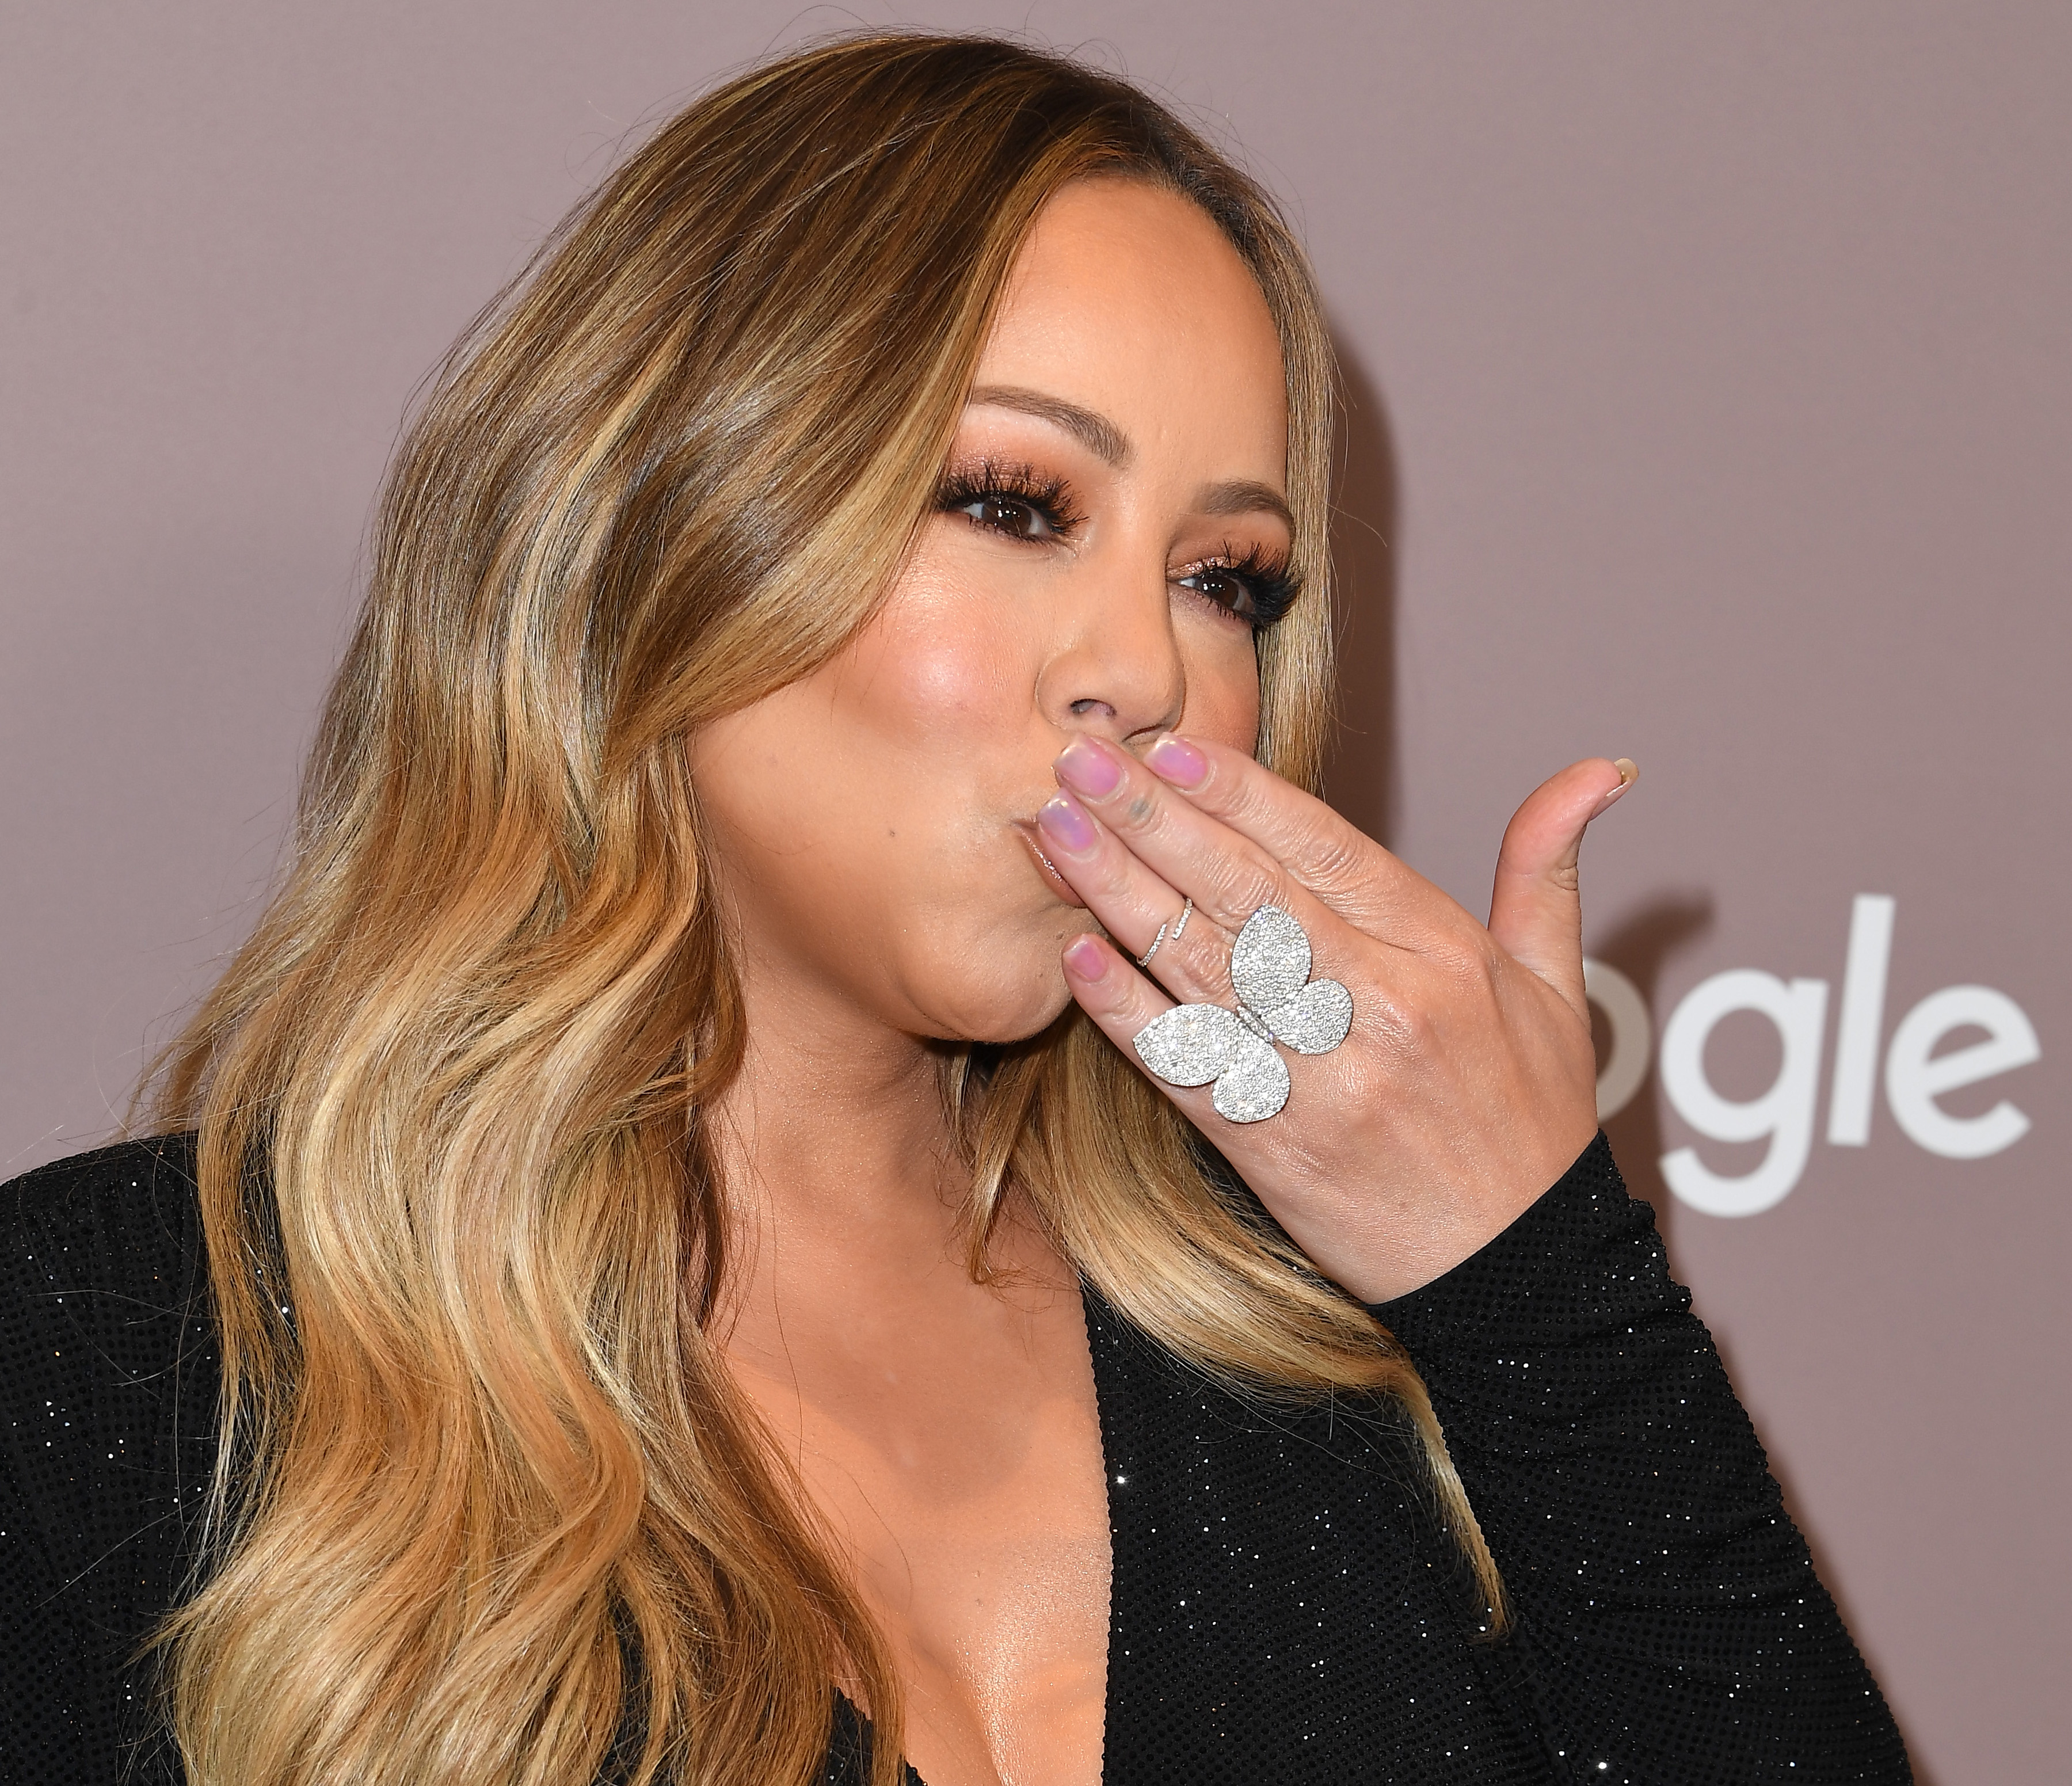 Best Celebrity Fathers Day 2021 Messages: Mariah Carey, Tyler Perry, Tyra Banks and More - Newsweek